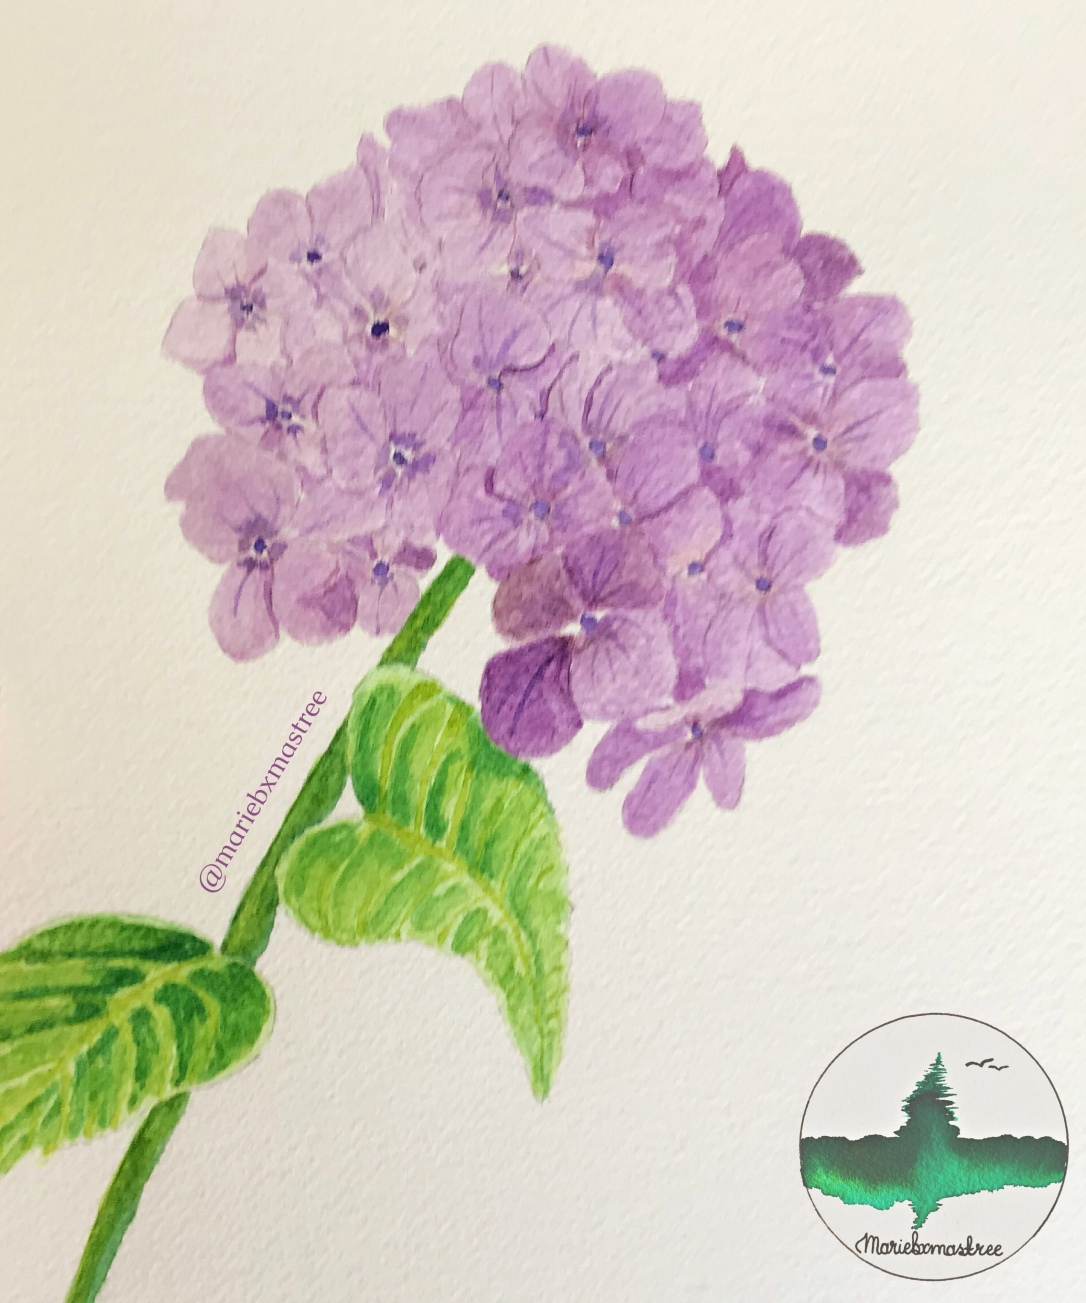 Watercolour Hydrangea. Watercolor painting. Artist: mariebxmastree